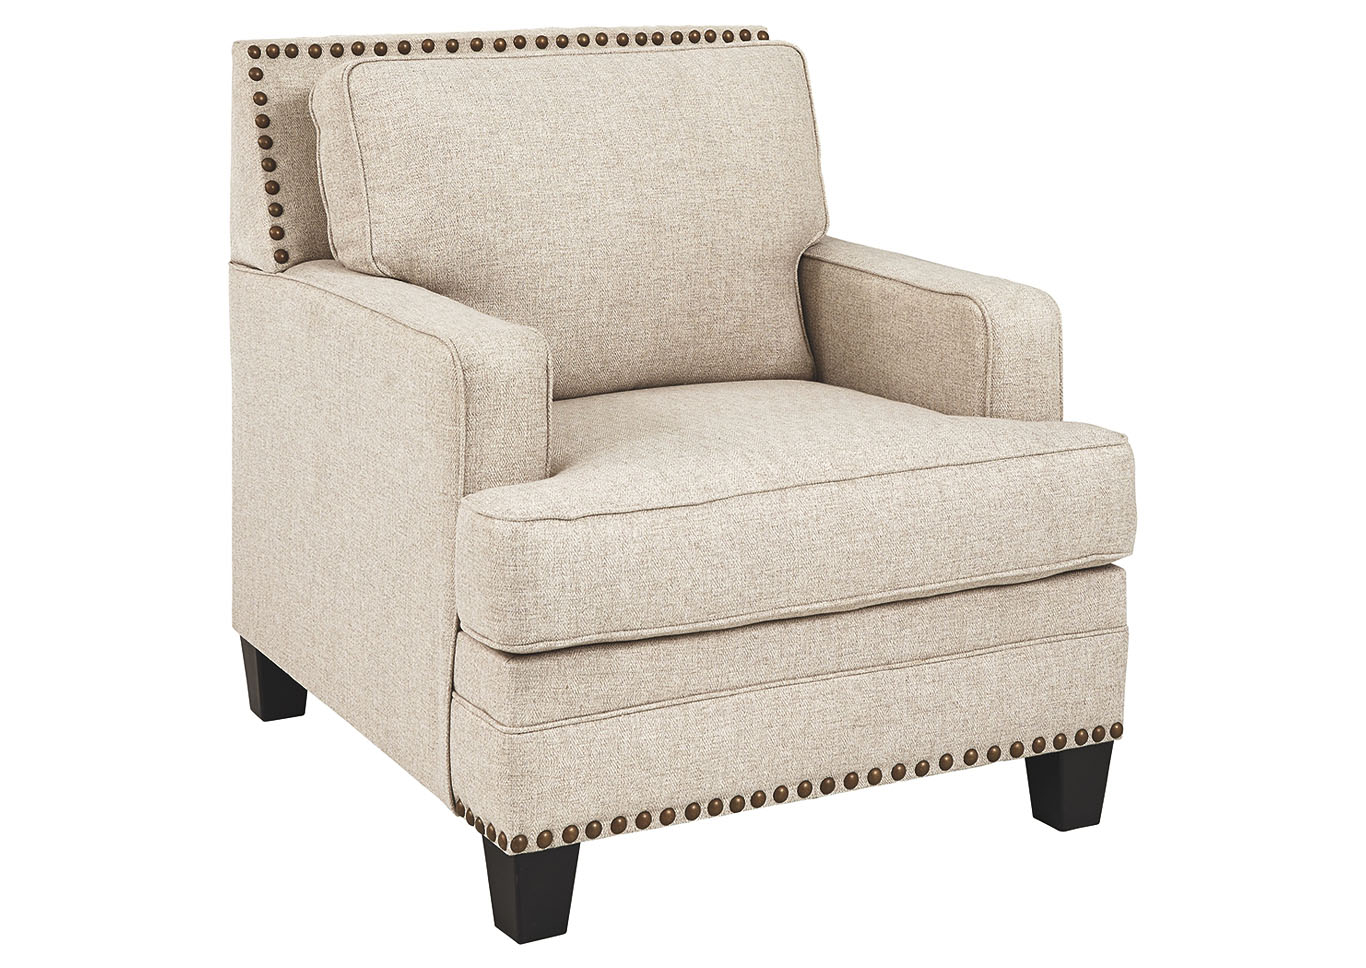 Claredon Linen Chair Ashley Furniture Homestore Singapore Throughout Chiles Linen Side Chairs (View 11 of 15)